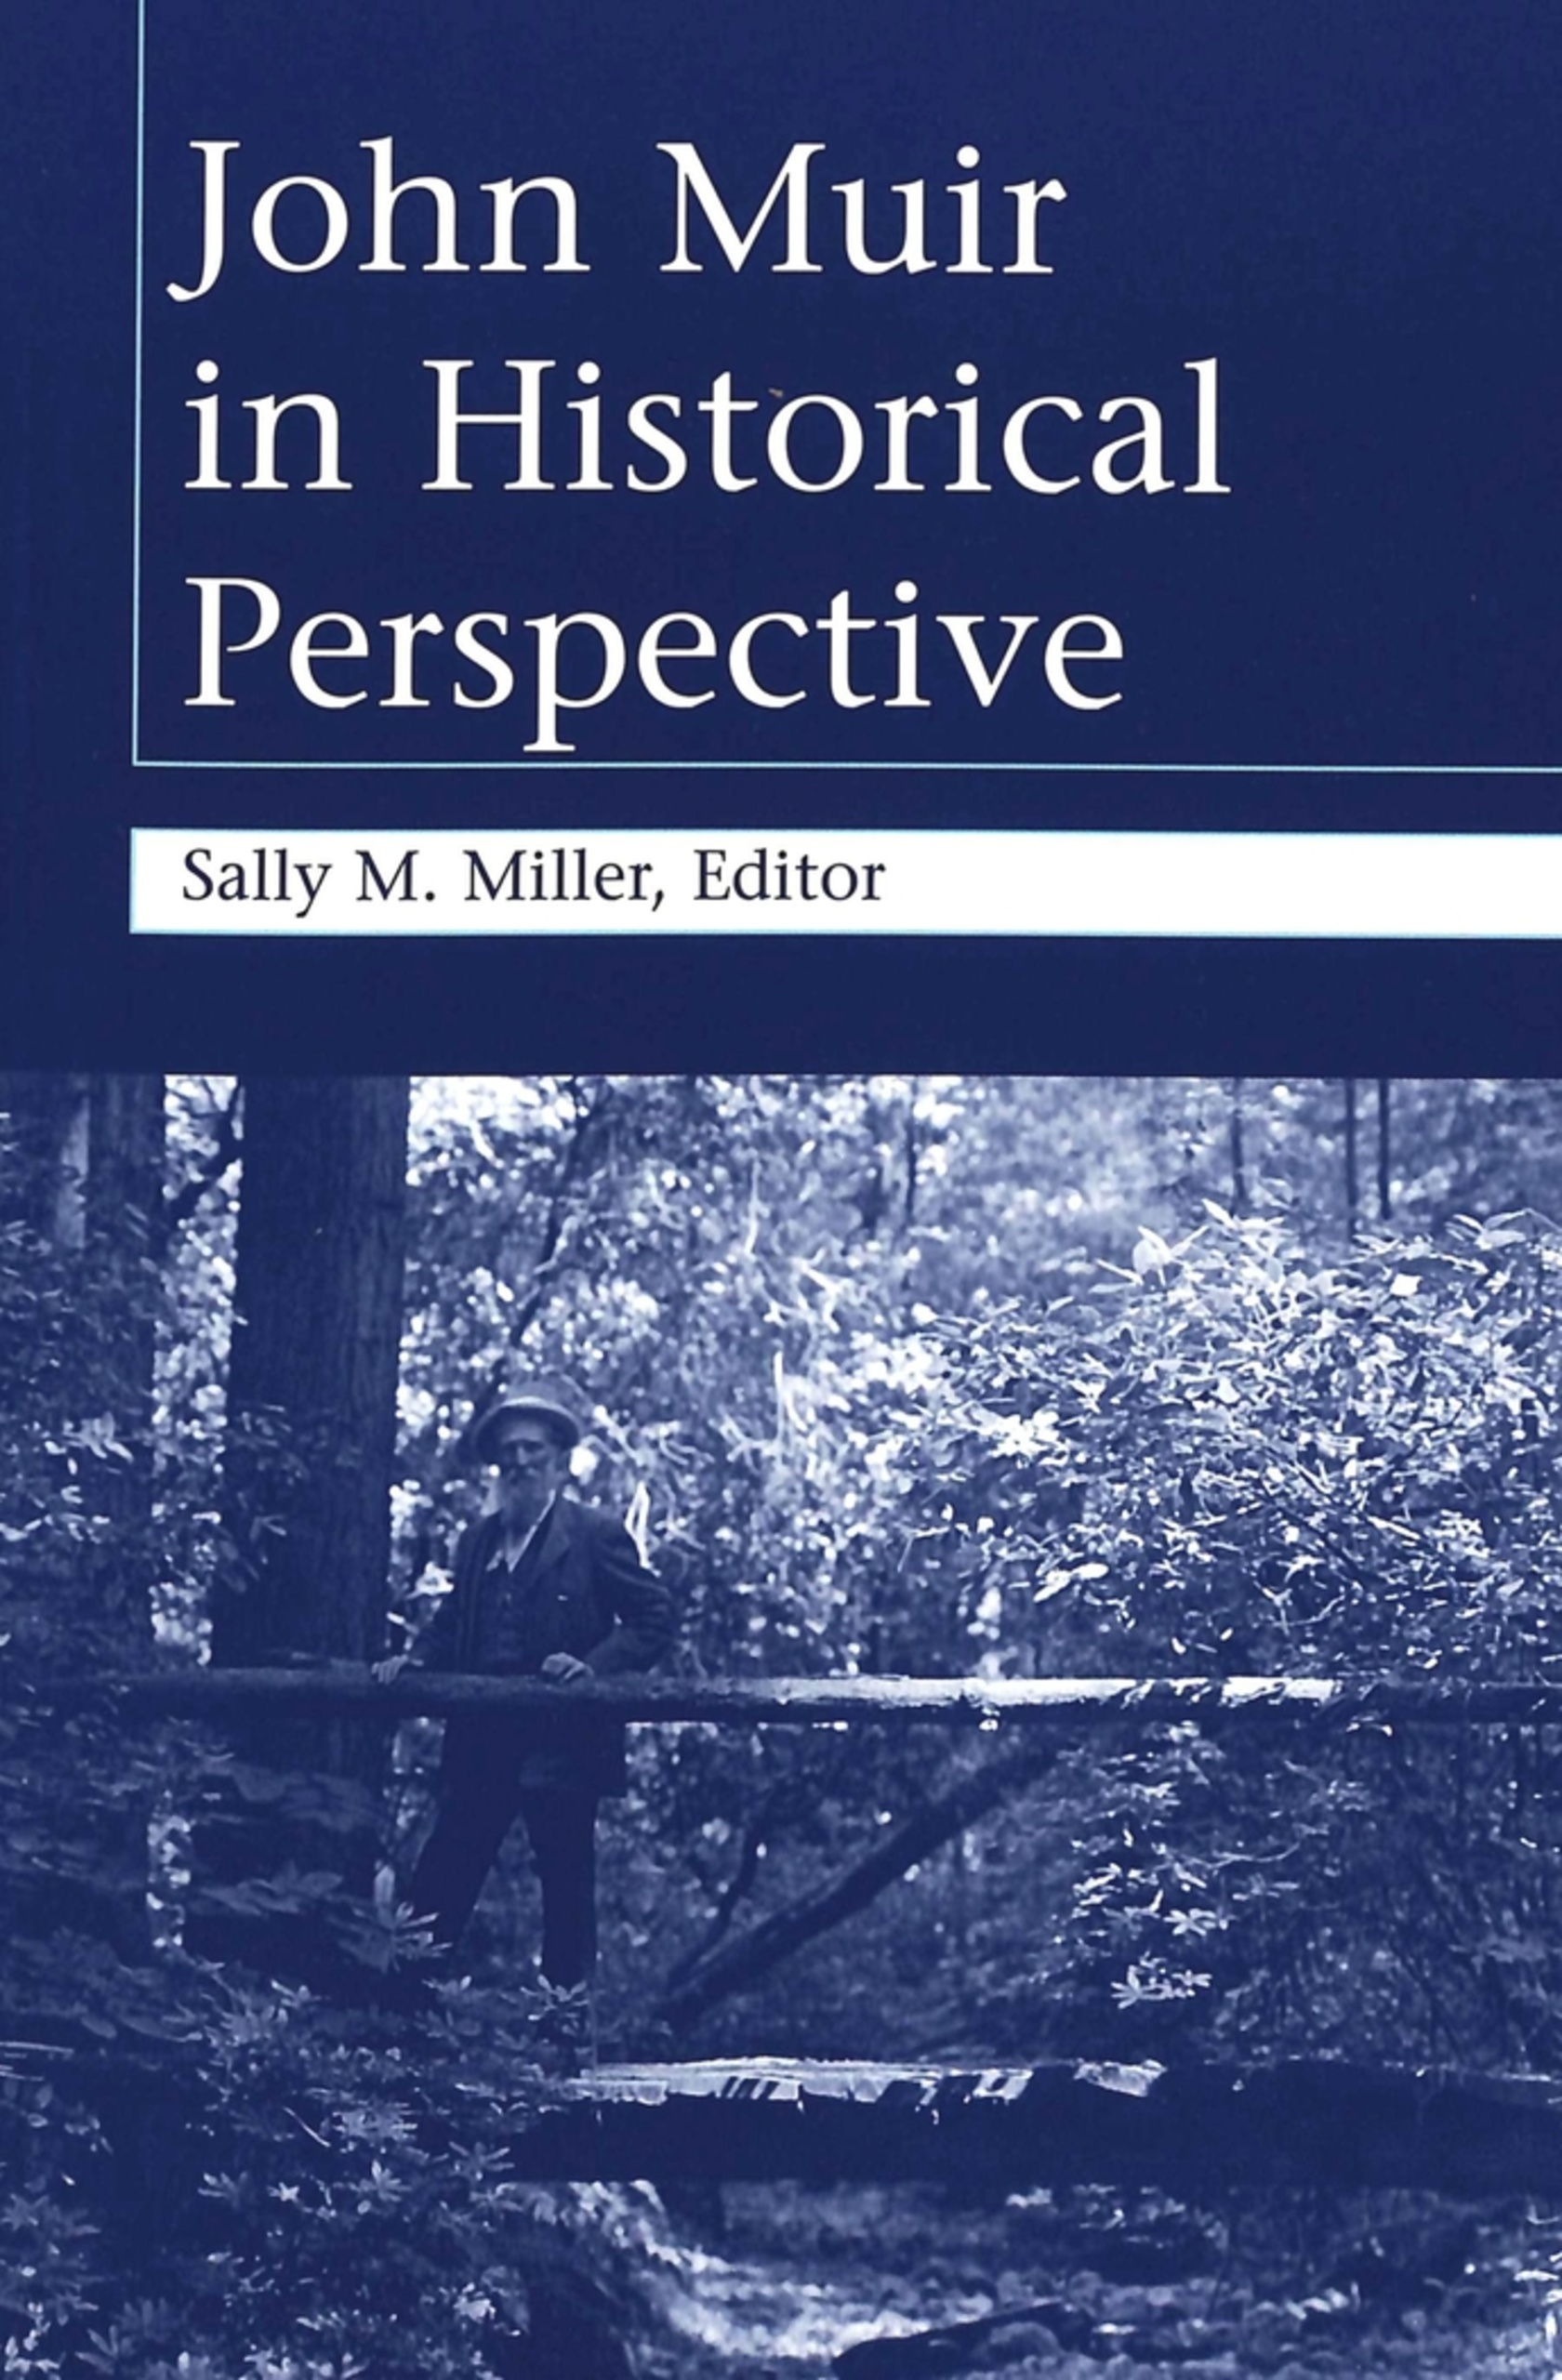 Title: John Muir in Historical Perspective